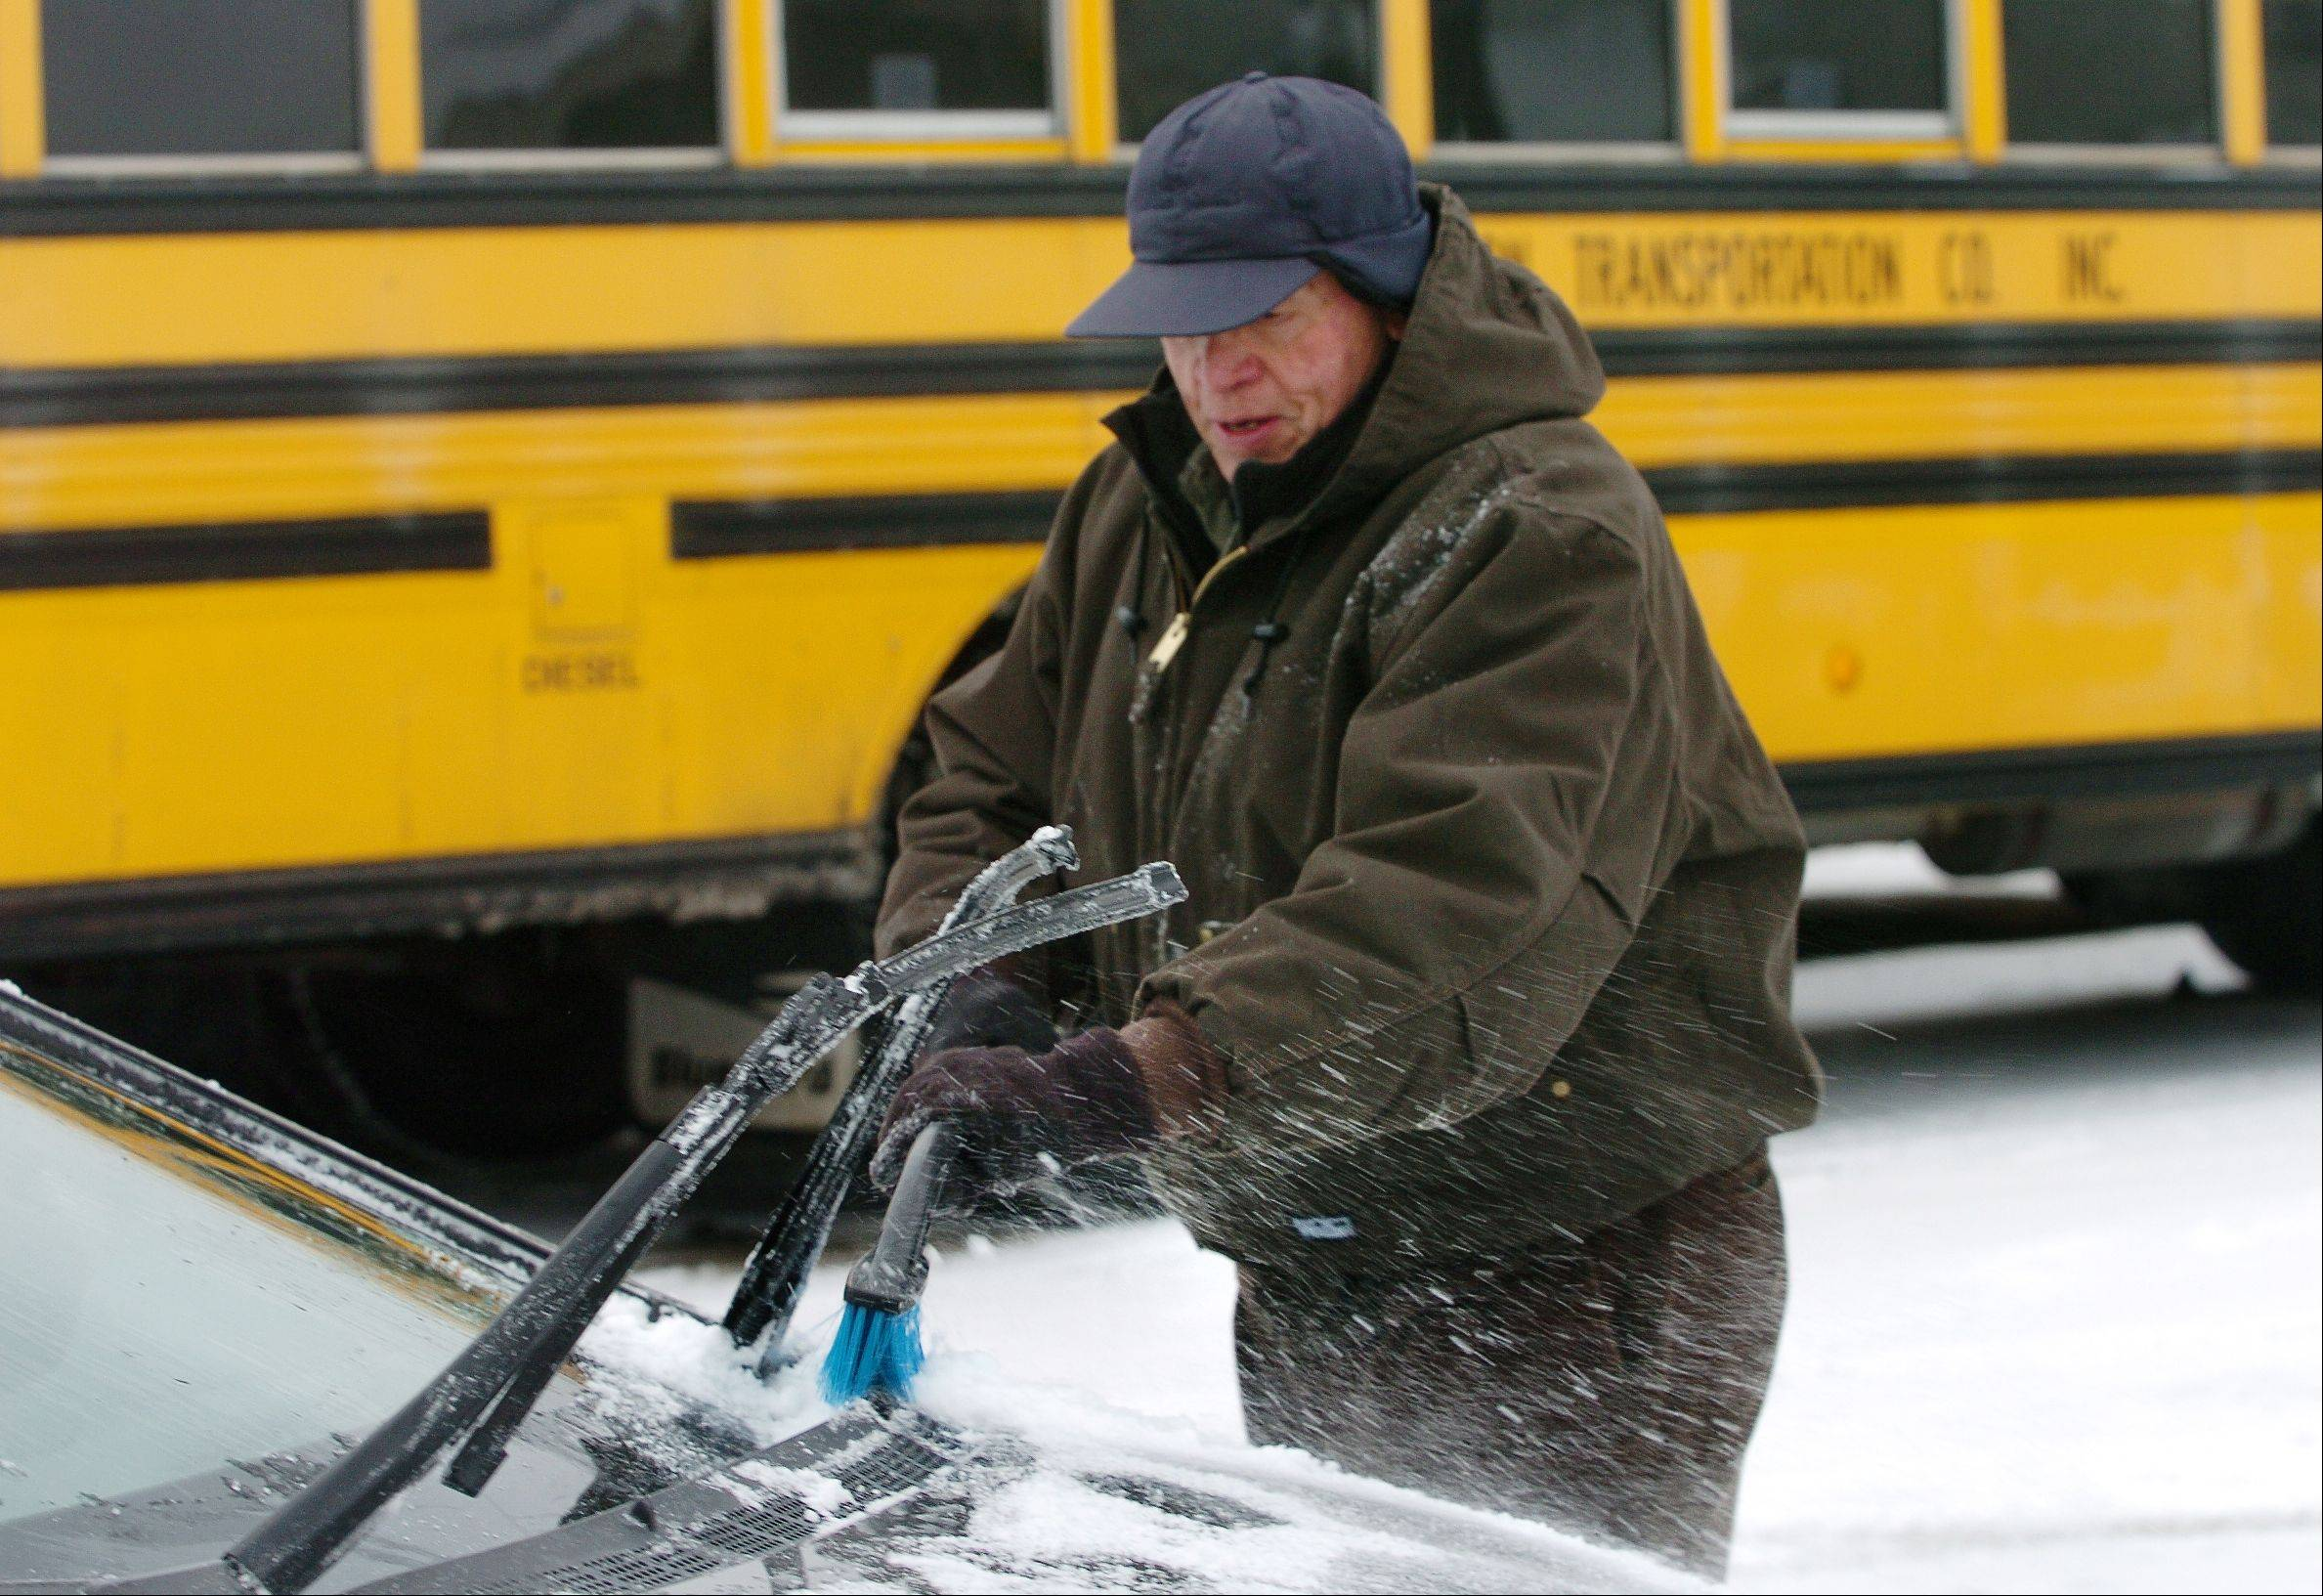 School bus driver Clint Curtis brushes off his car after finishing his morning run Friday in Barrington.